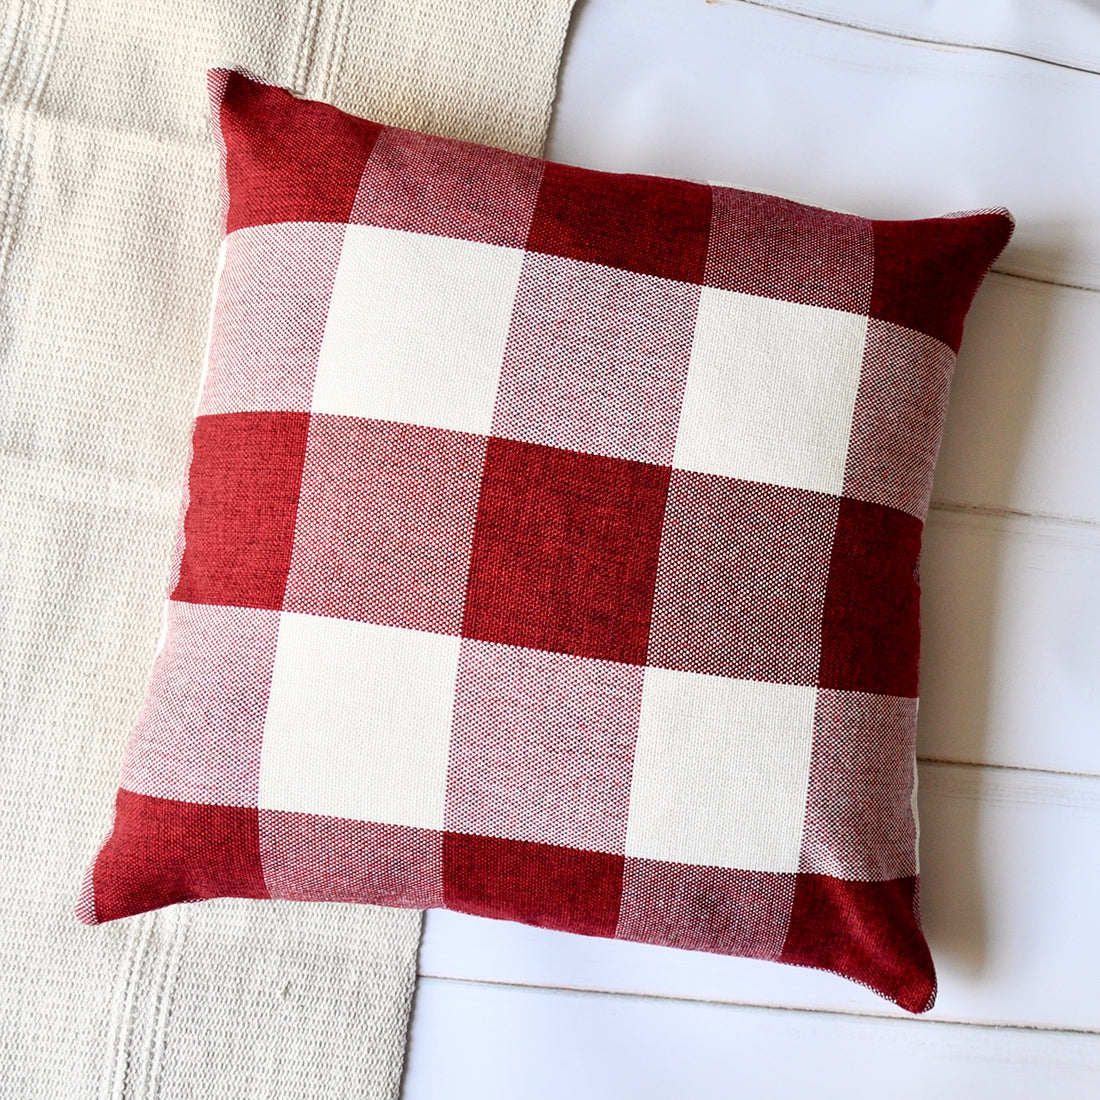 PANDICORN Farmhouse Decorative Throw Pillow Covers Set of 2, Black and White Plaid Textured Throw Pillows Cases, Red and White Buffalo Check Pillowcases Cushion for Couch Bed, 18 x 18 Inch